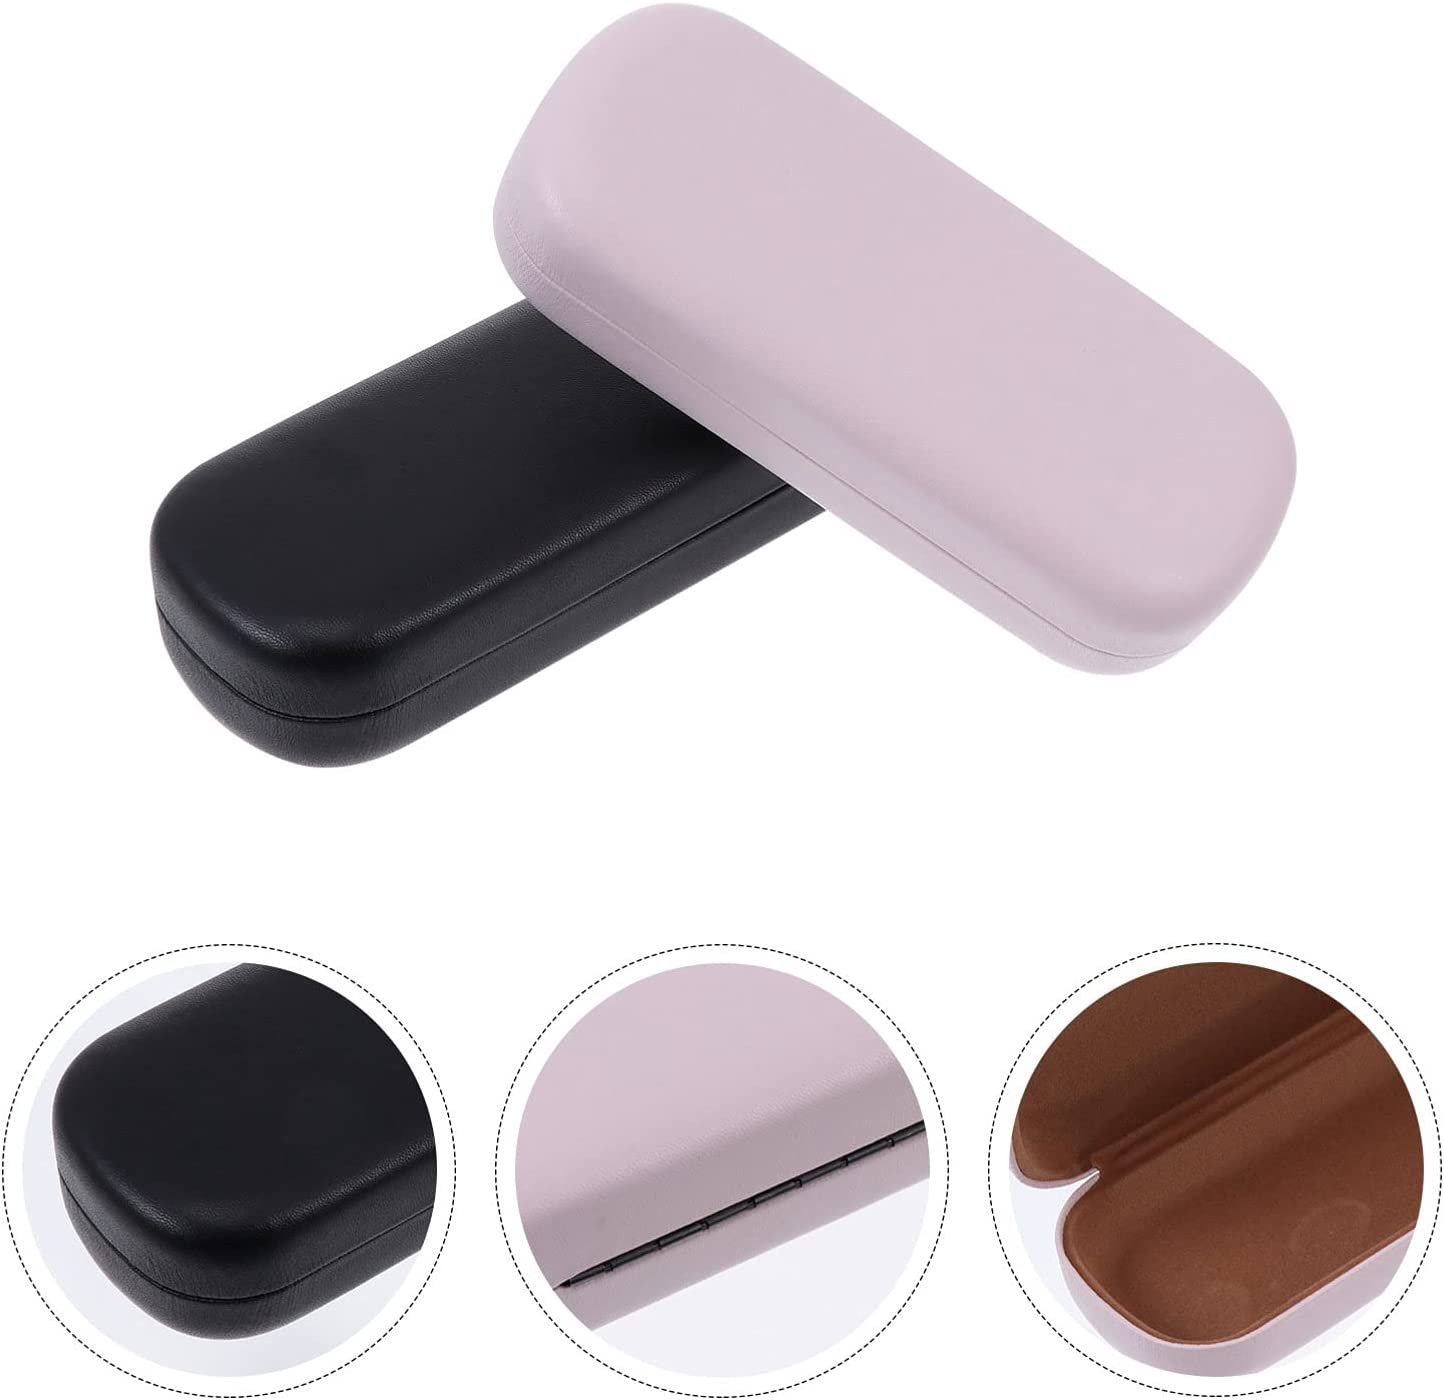 EXCEART 2pcs Soft Glasses Case Leather Sunglasses Eyeglasses Spectacle Storage Case Holder for Men and Women